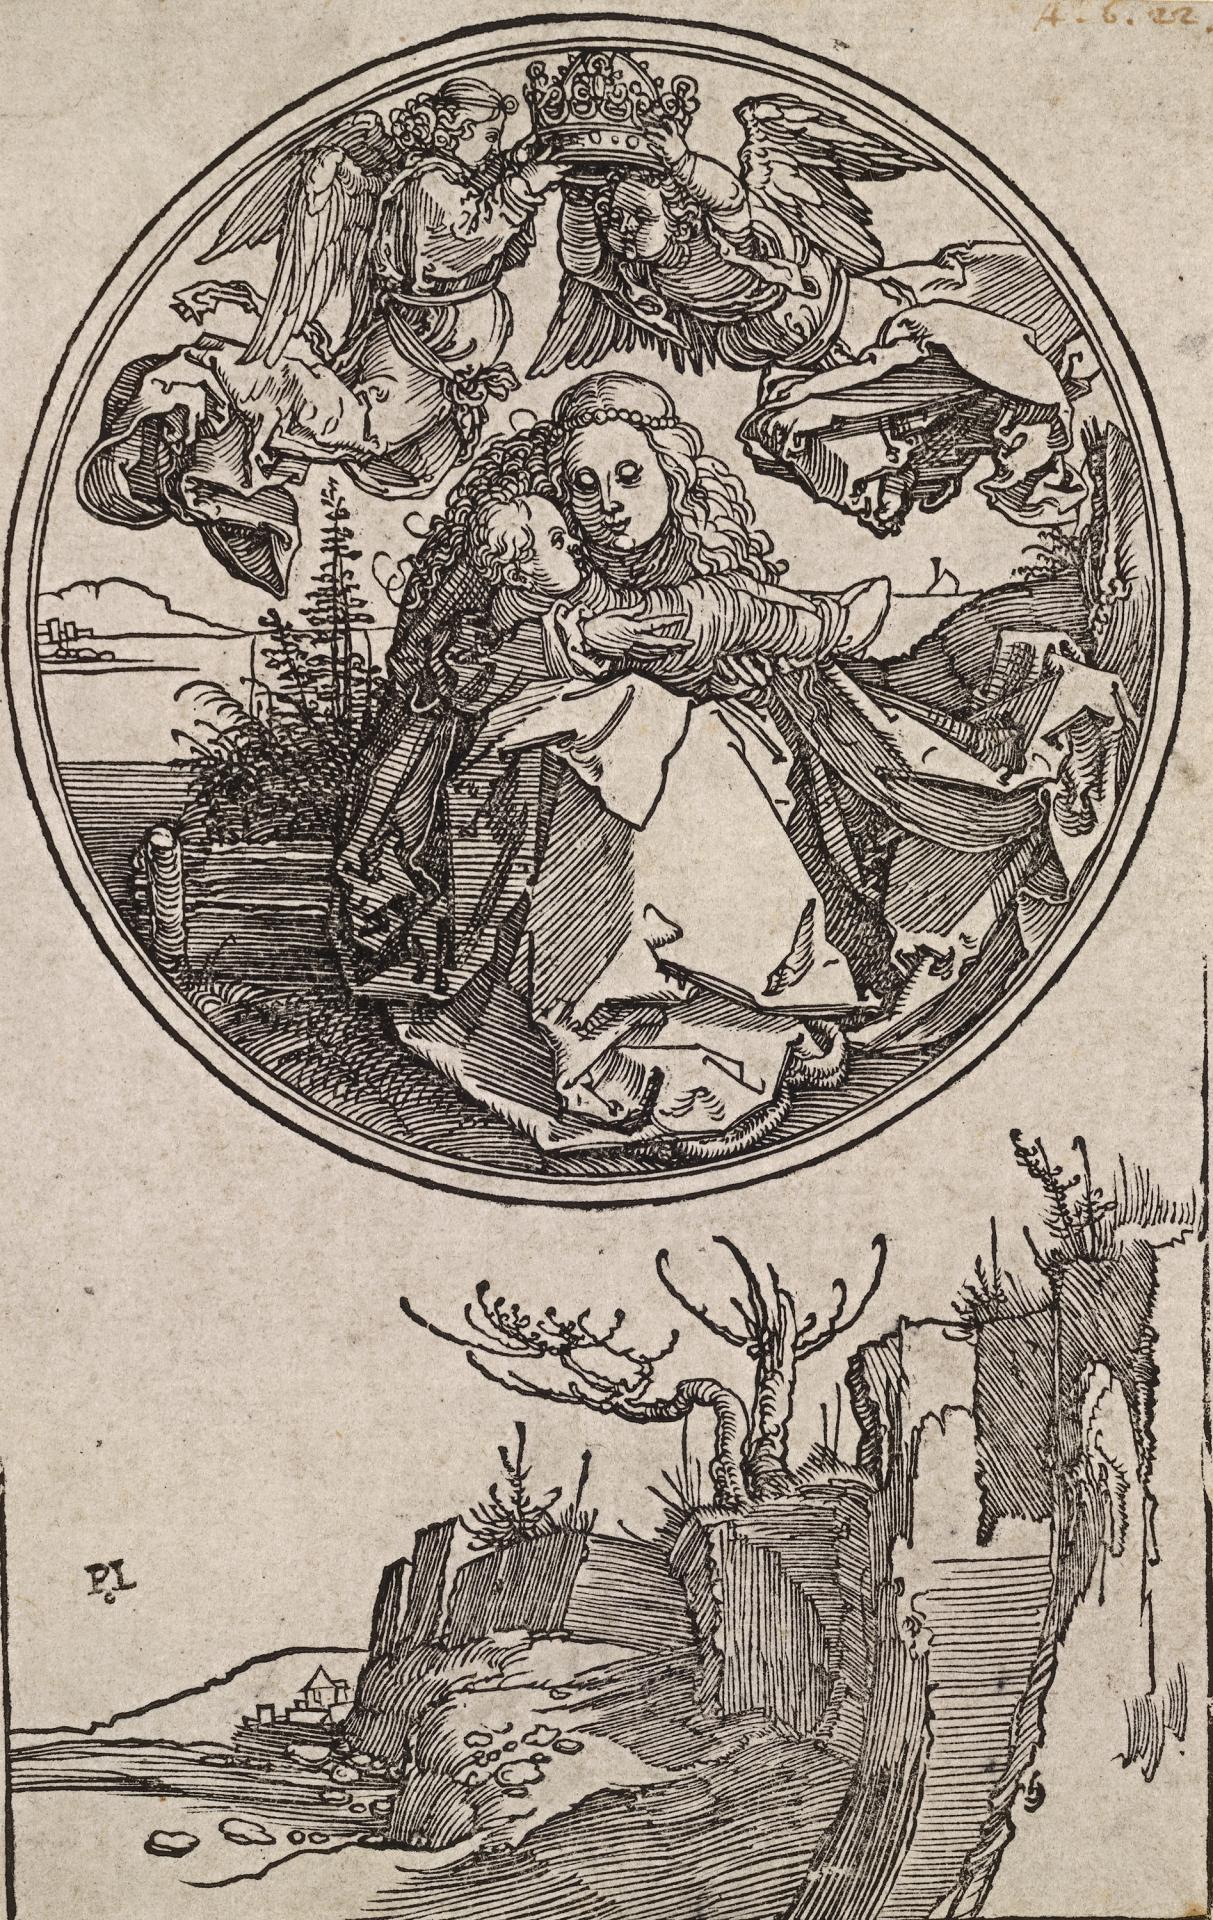 The Madonna crowned by two angels above a landscape